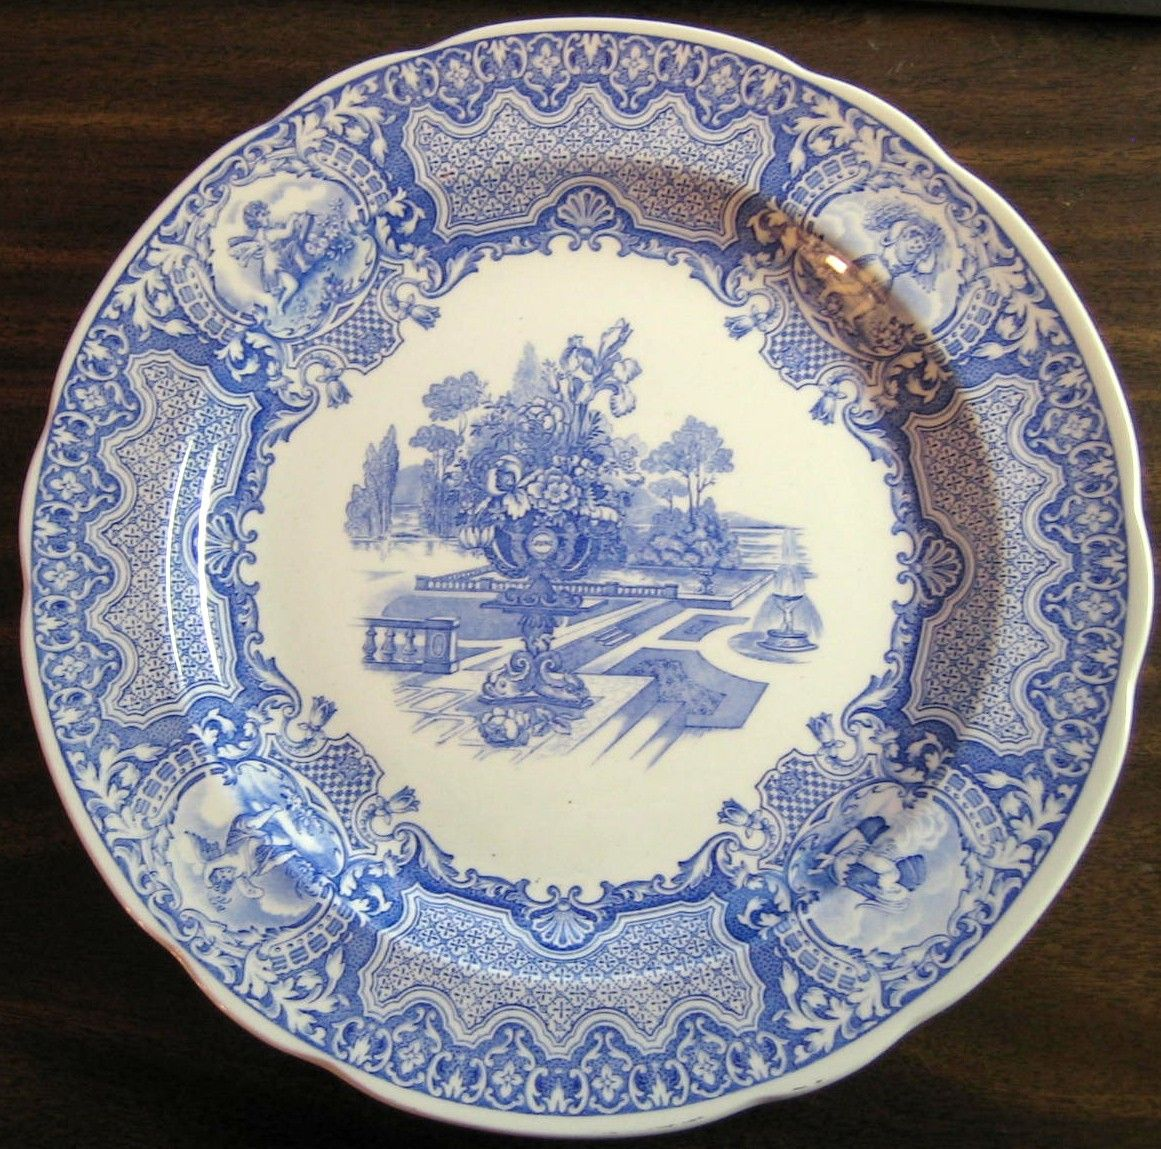 Pin on Decorative Plates with Medallions